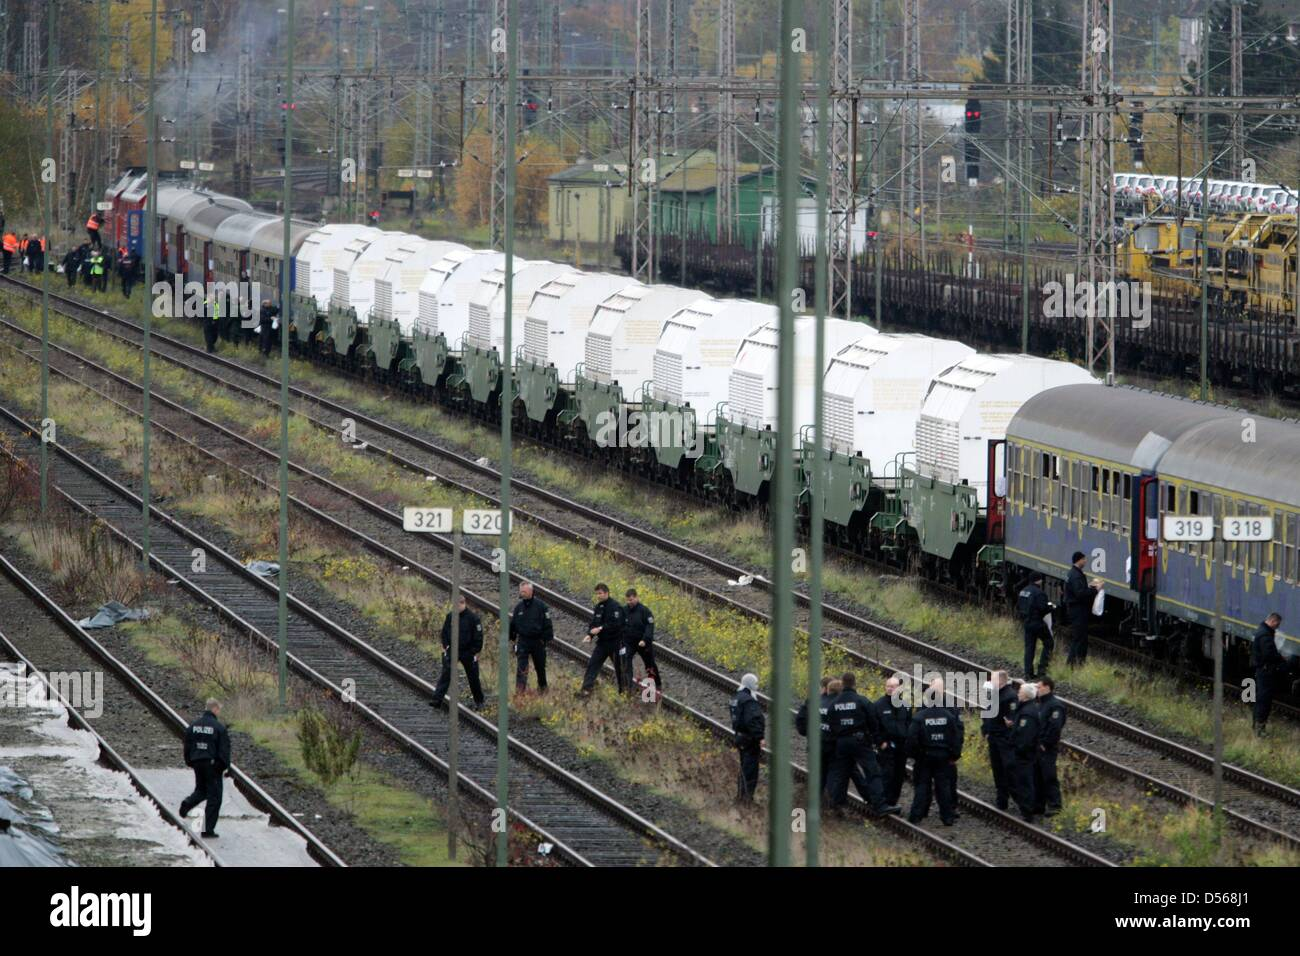 Police officers dressed in riot gear have break while standing next to the train that carries the Castor nuclear - Stock Image